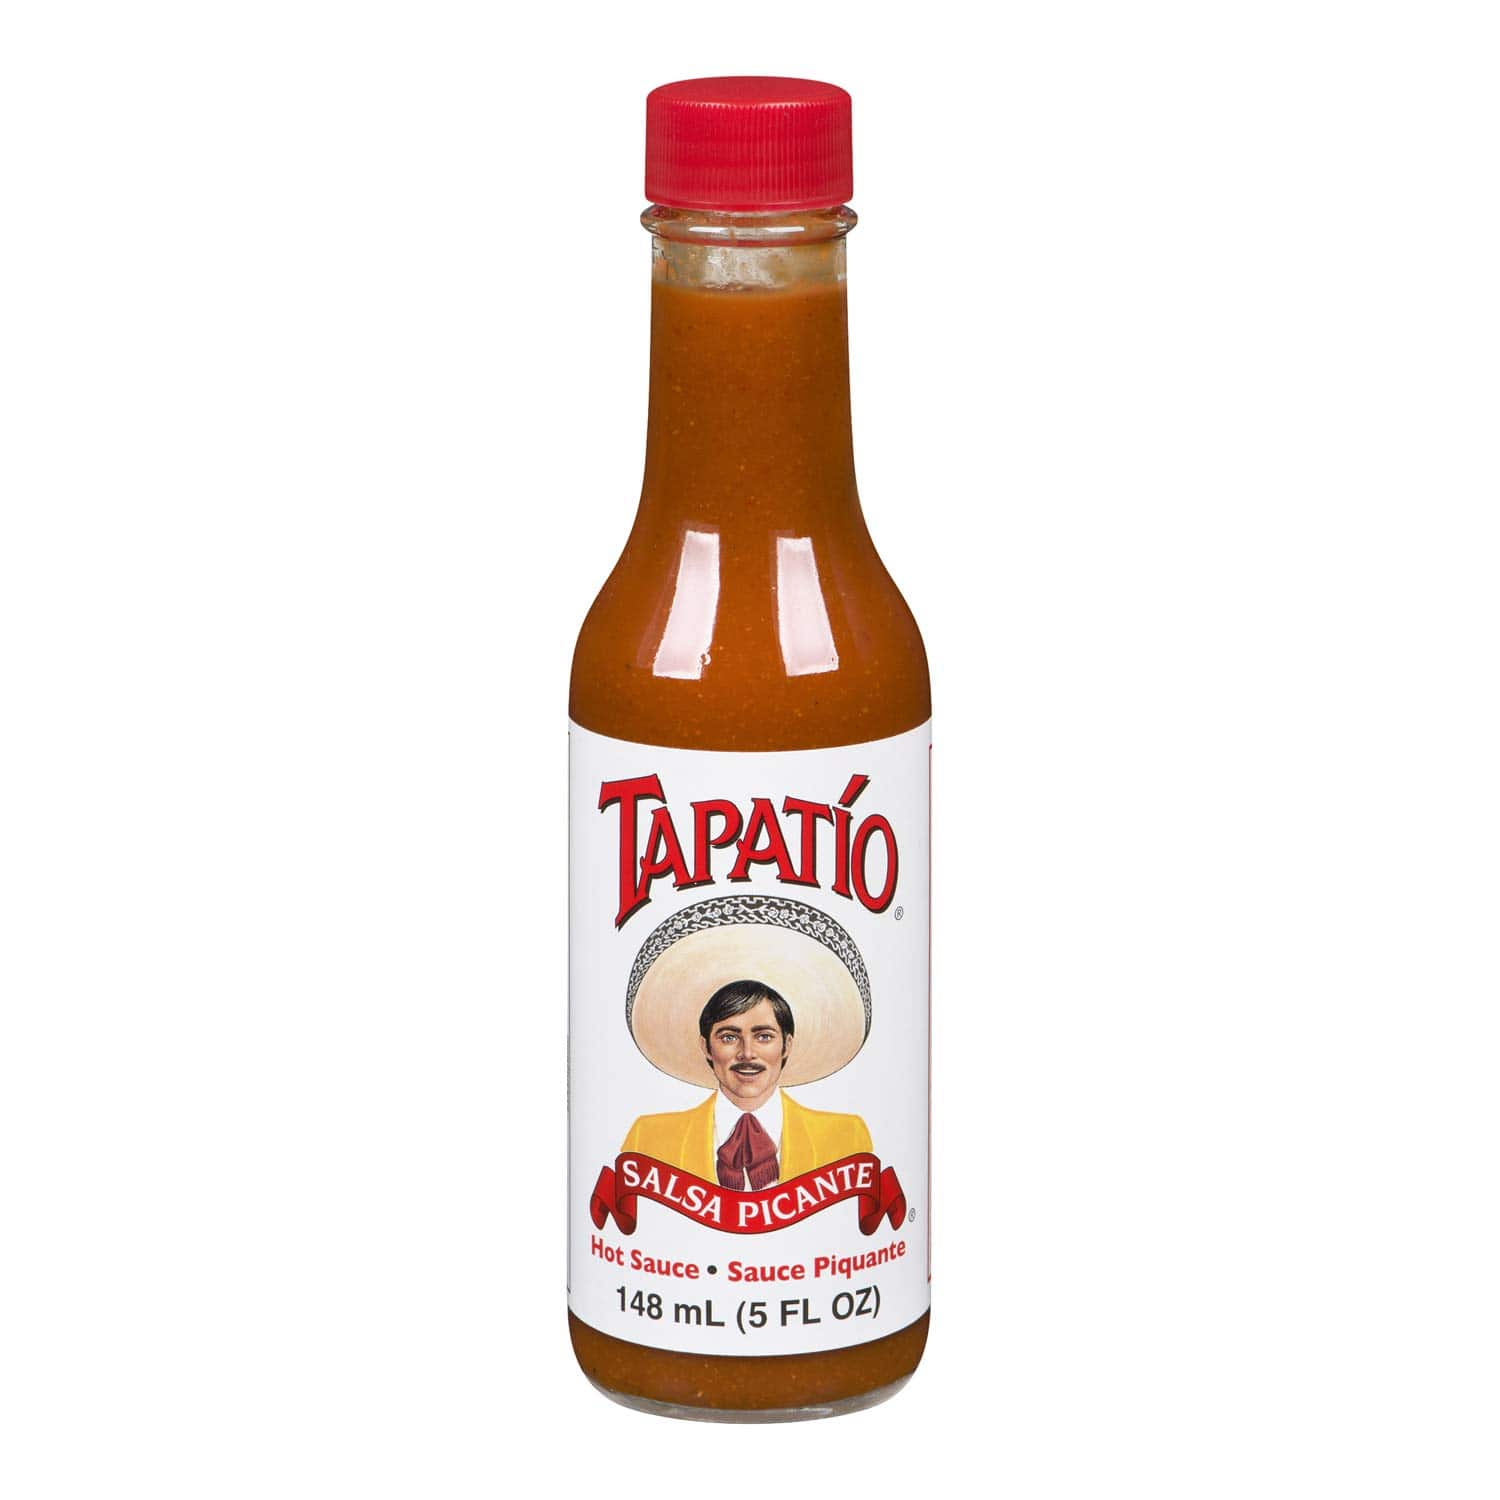 5-Ounce Tapatio Salsa Picante Hot Sauce for $0.79 at Amazon (use either 1-time order or S&S)